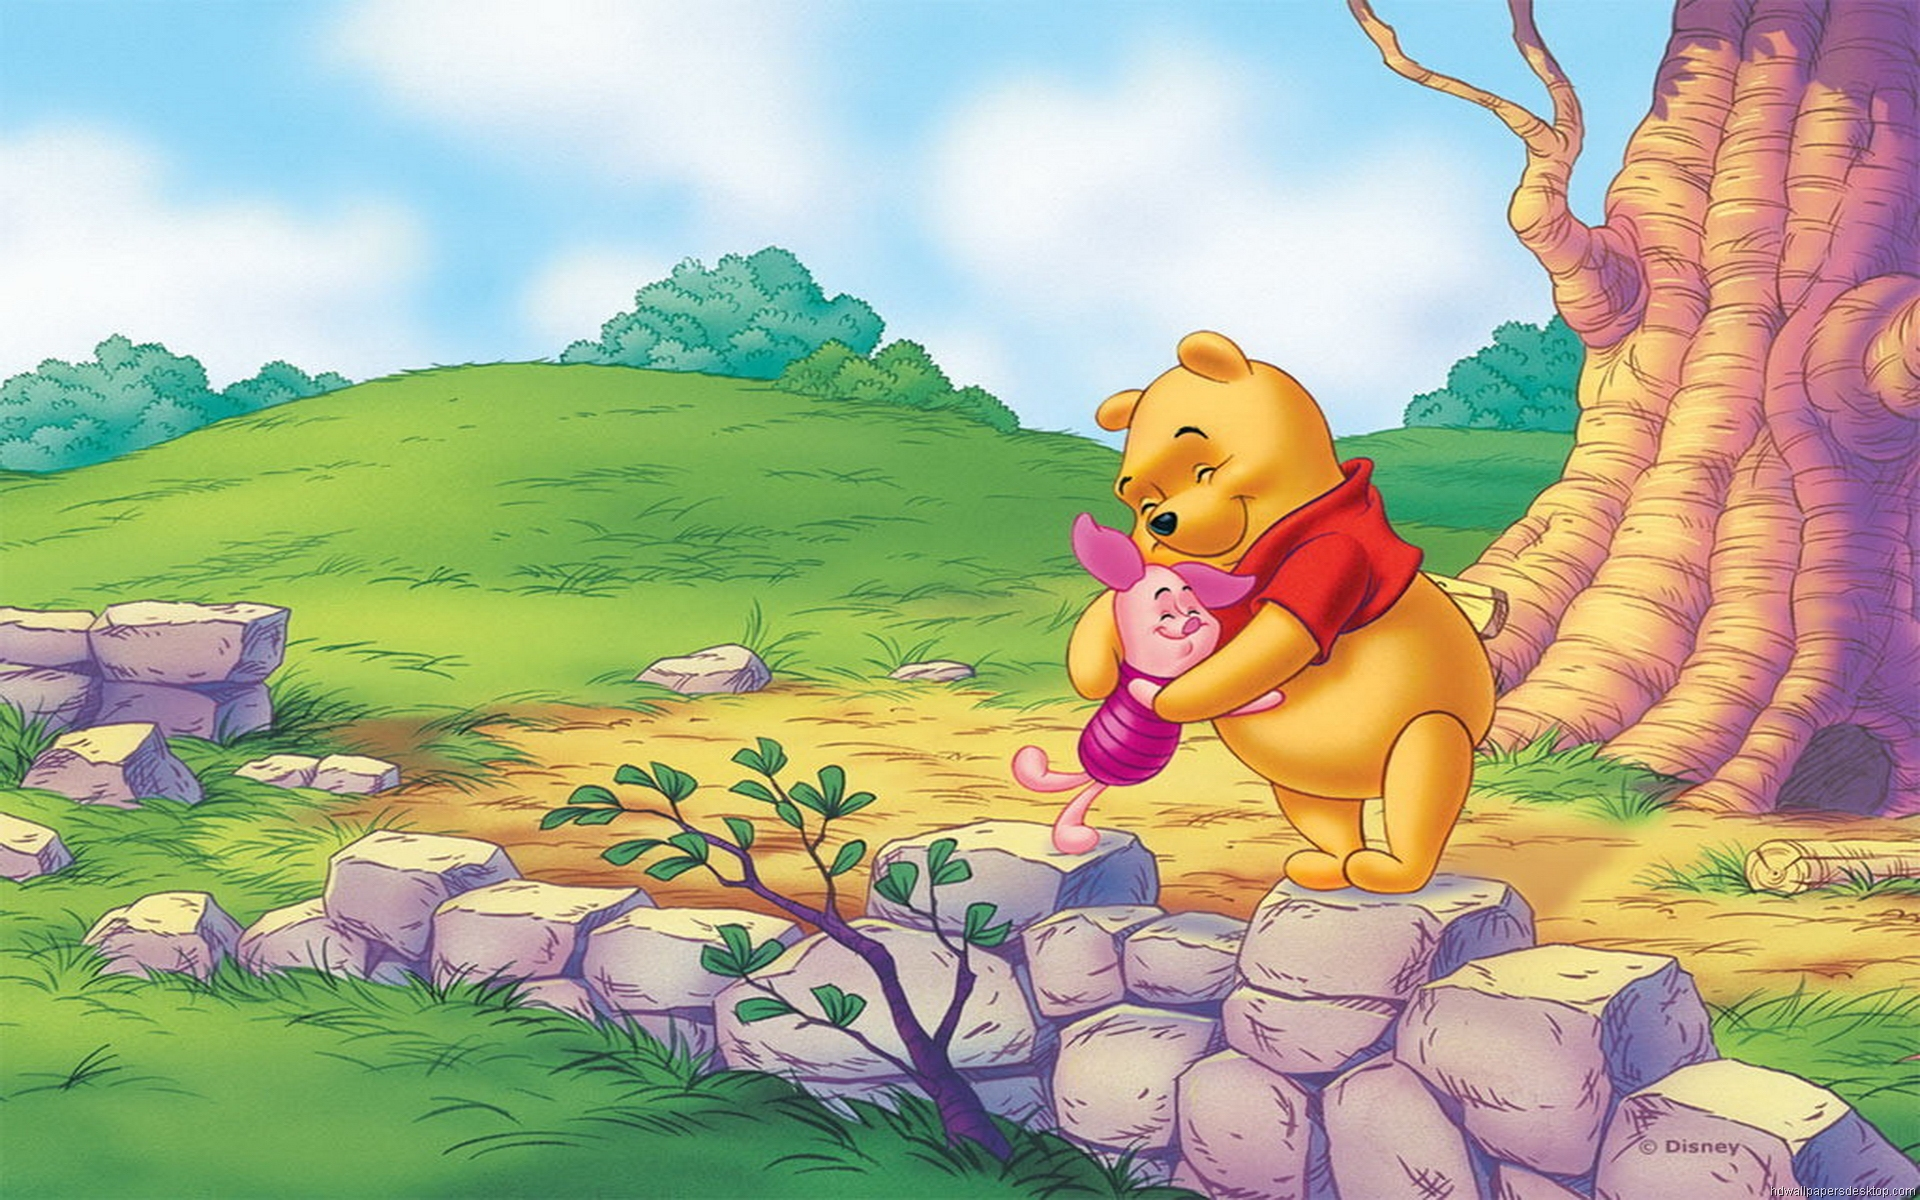 Winnie the pooh wallpaper android phones 9500 wallpaper walldiskpaper winnie the pooh wallpaper android phones voltagebd Gallery